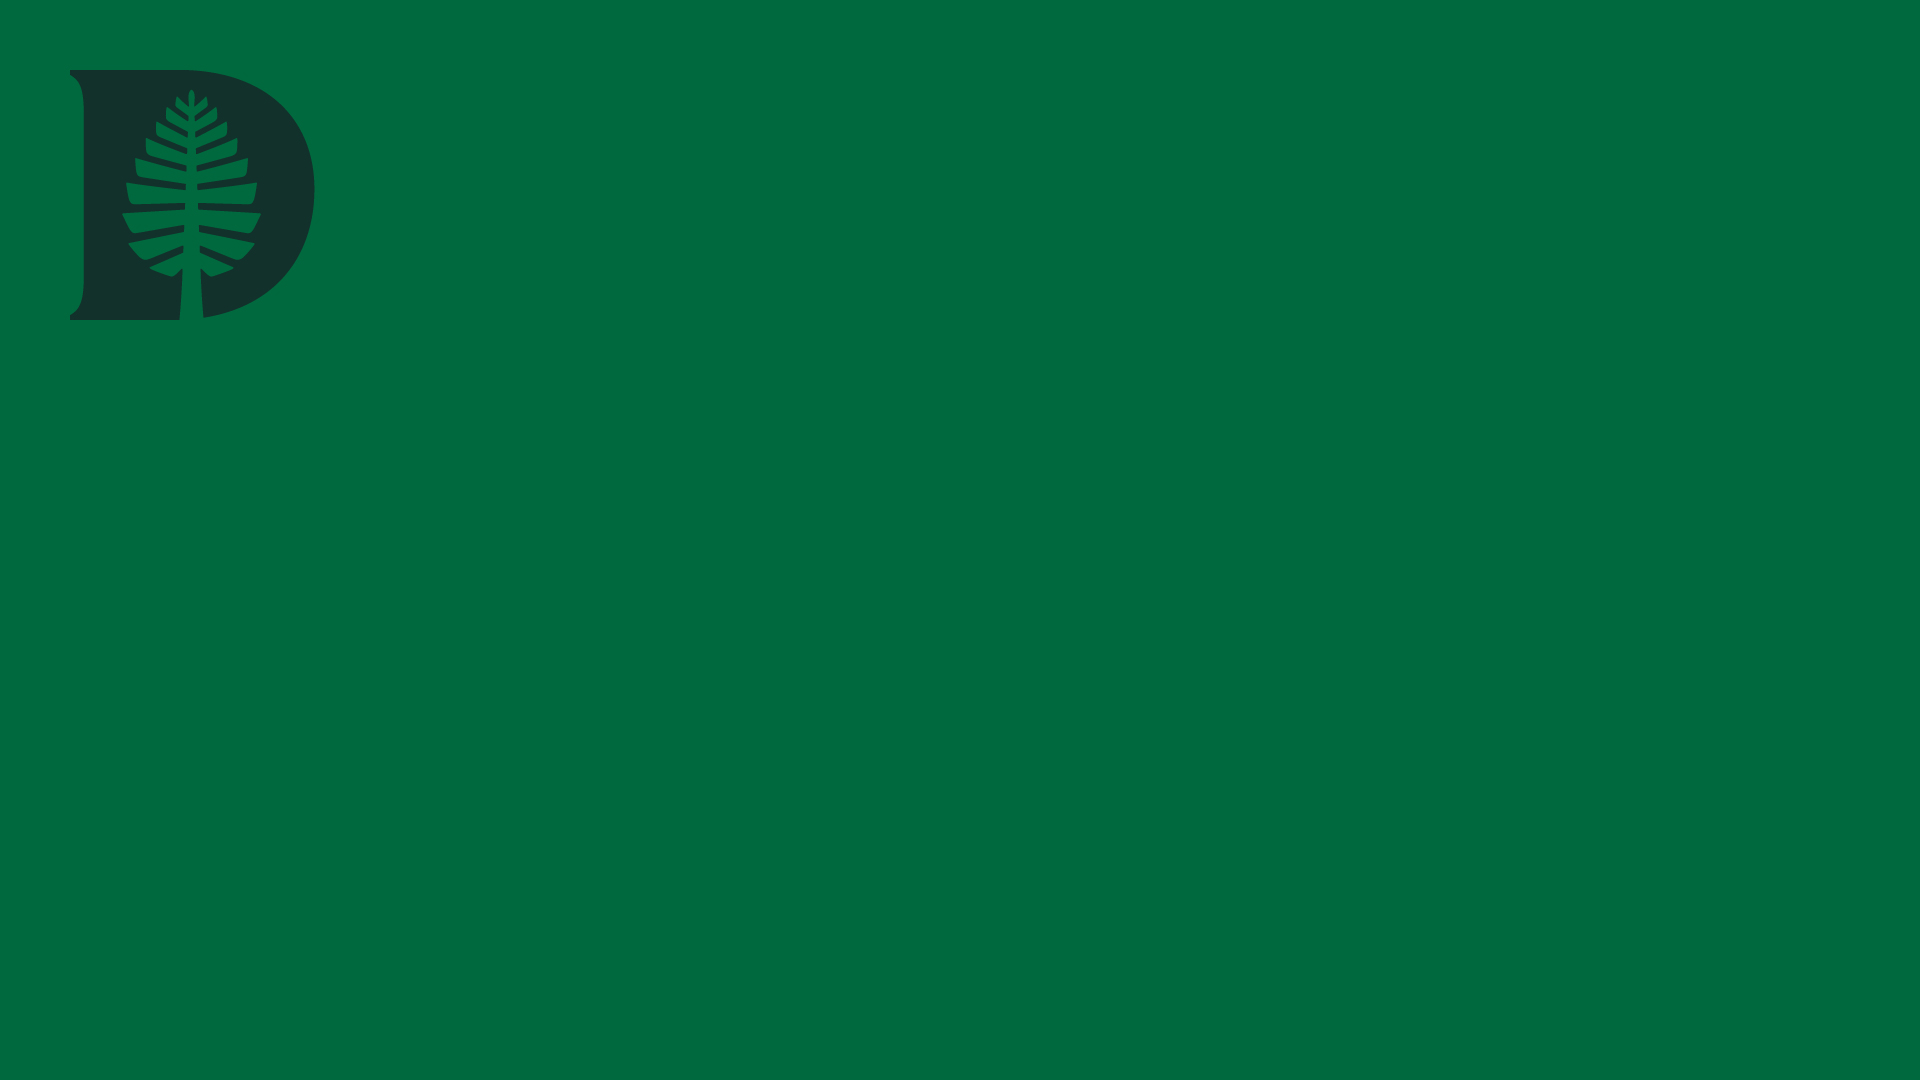 Forest Green D-Pine Zoom Background